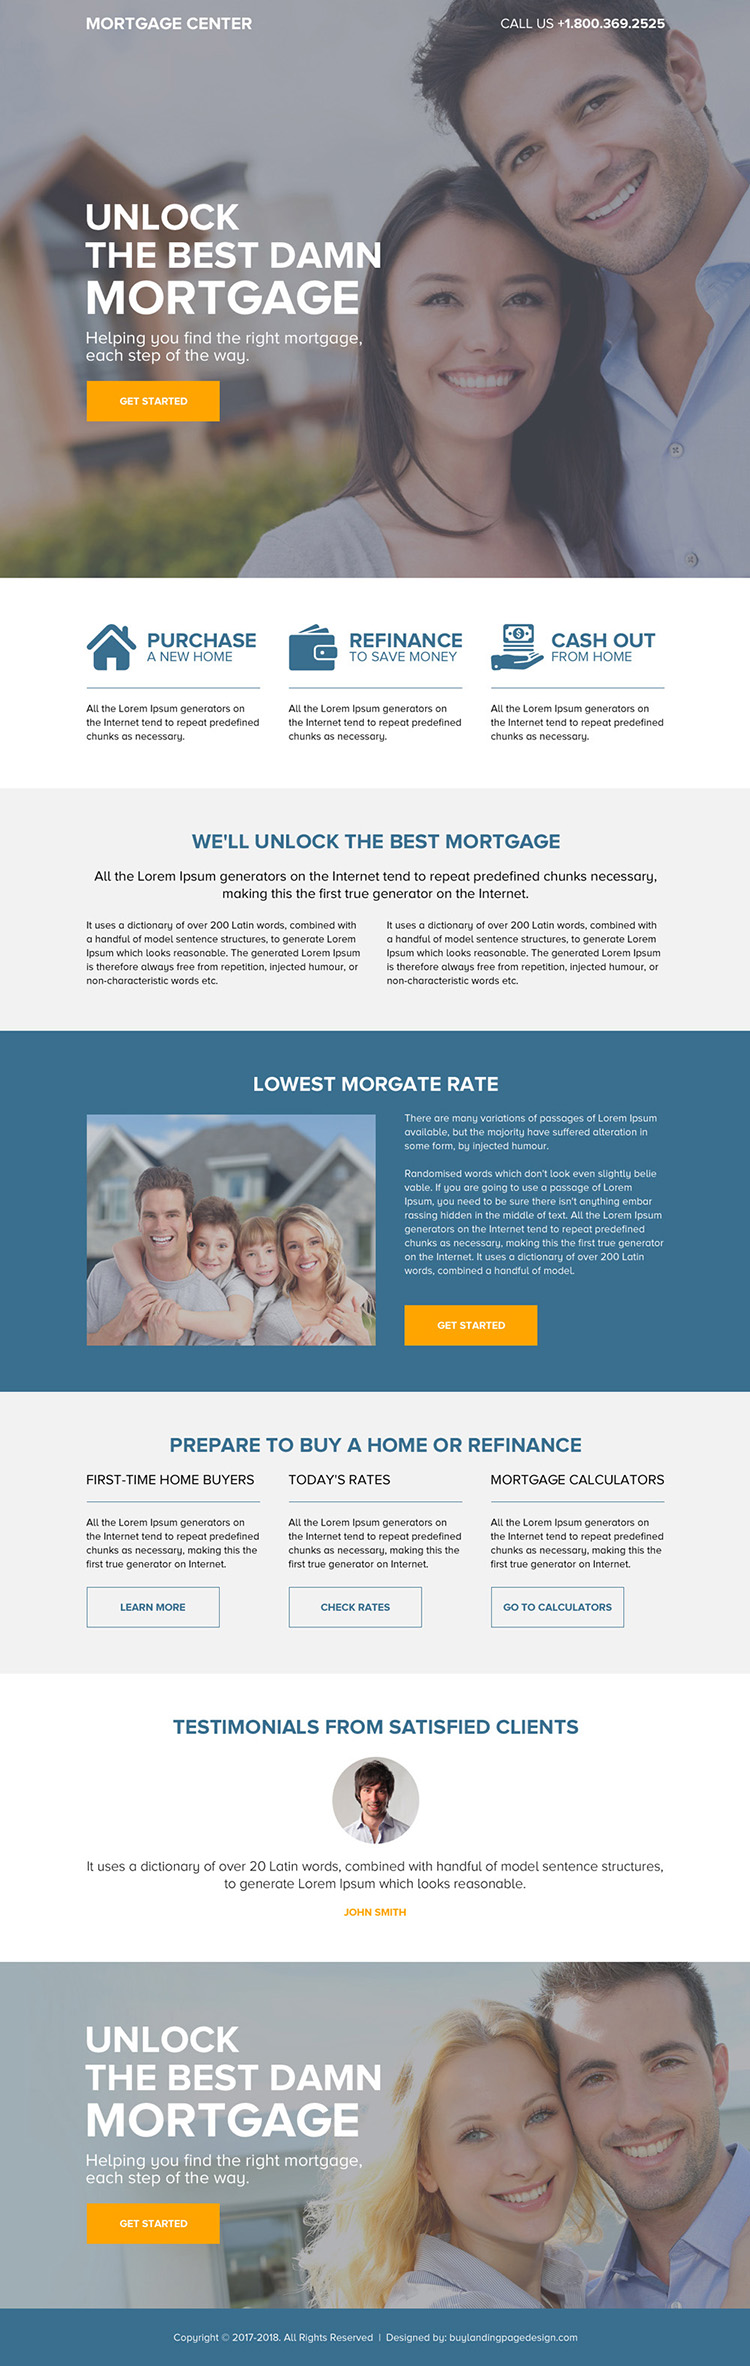 responsive mortgage center call to action landing page design